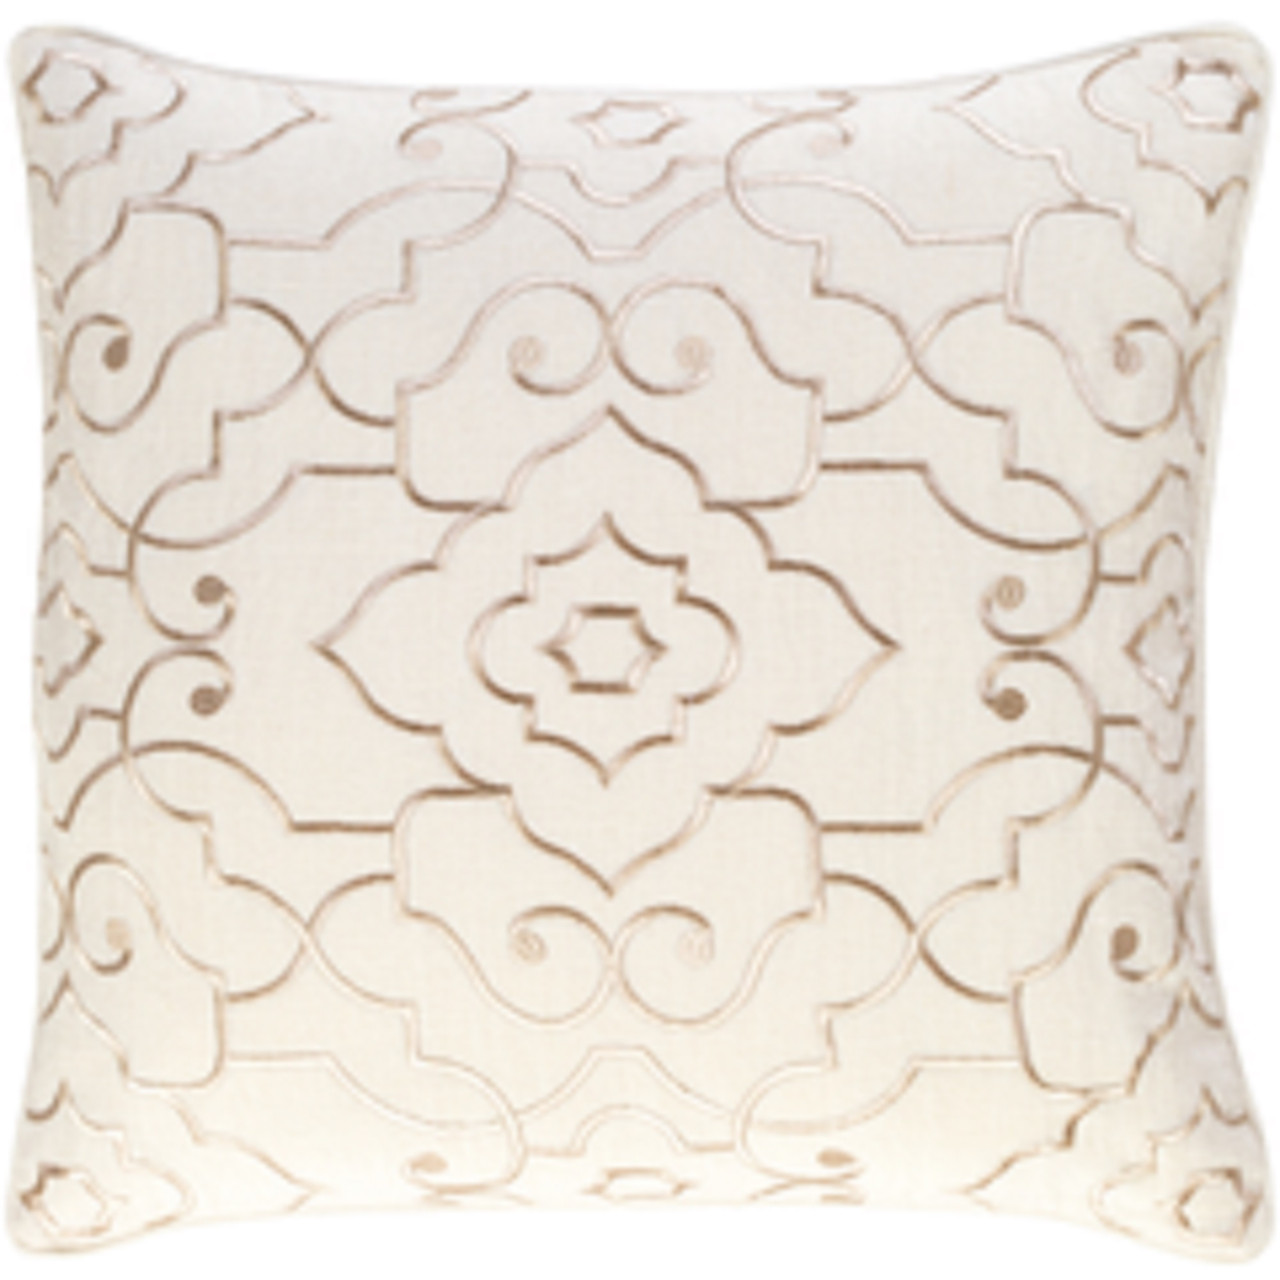 20 Ivory Cream Gold Woven Decorative Square Throw Pillow Down Filler Christmas Central